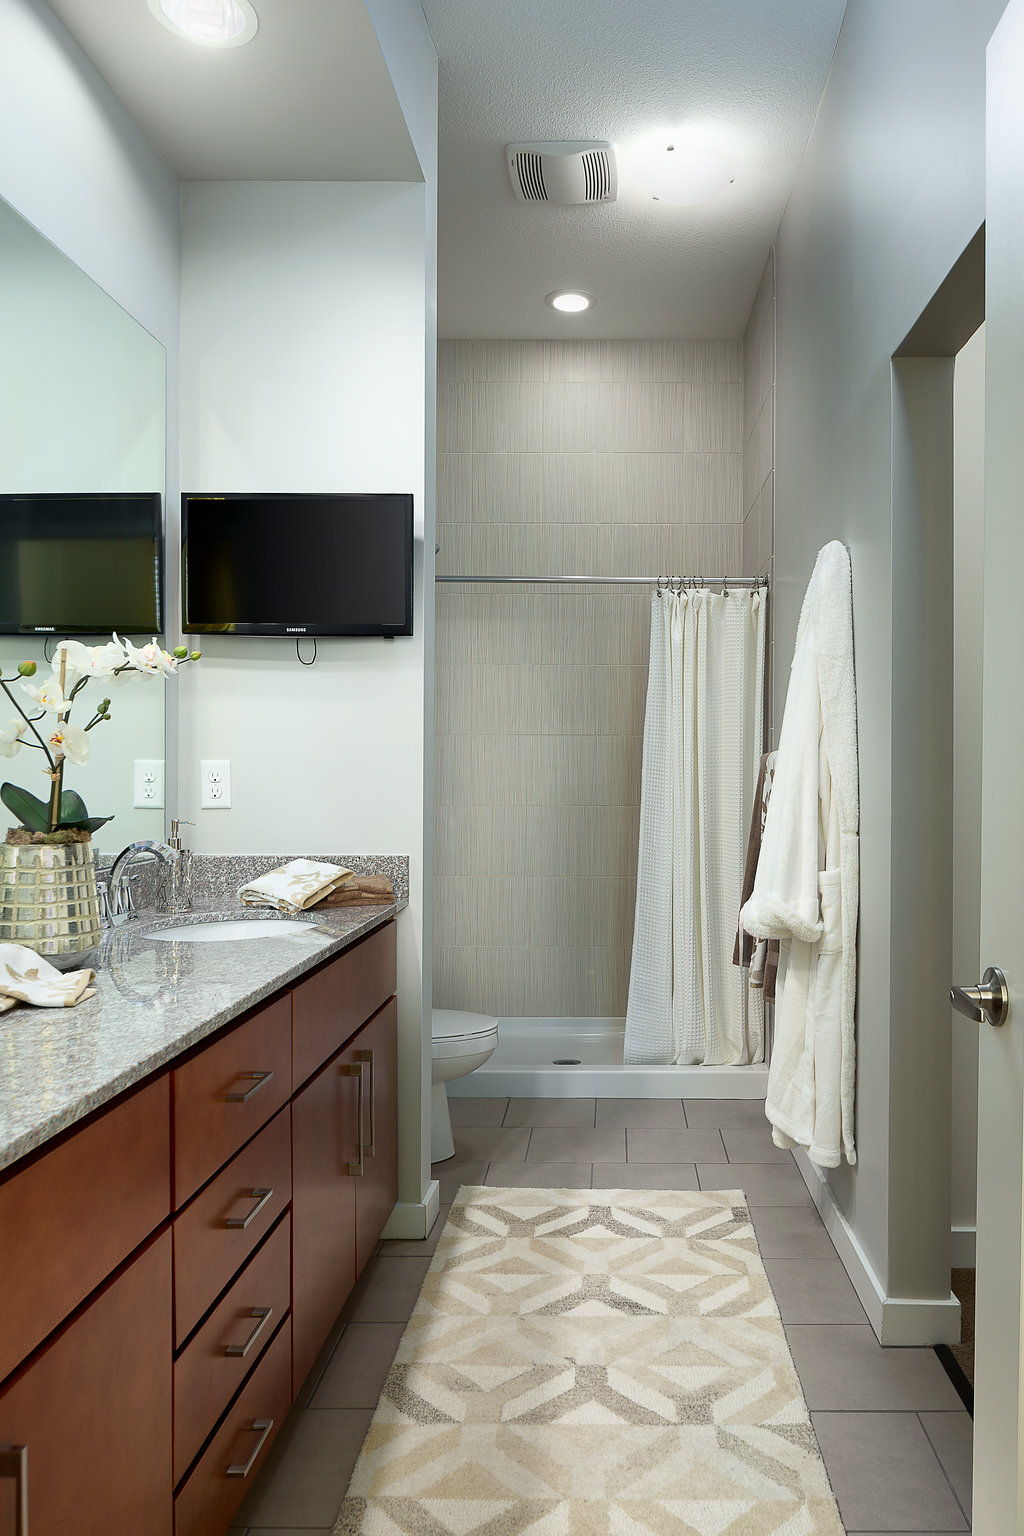 Luxury Bathrooms at Domain City Center Luxury Apartments in Lenexa, Kansas